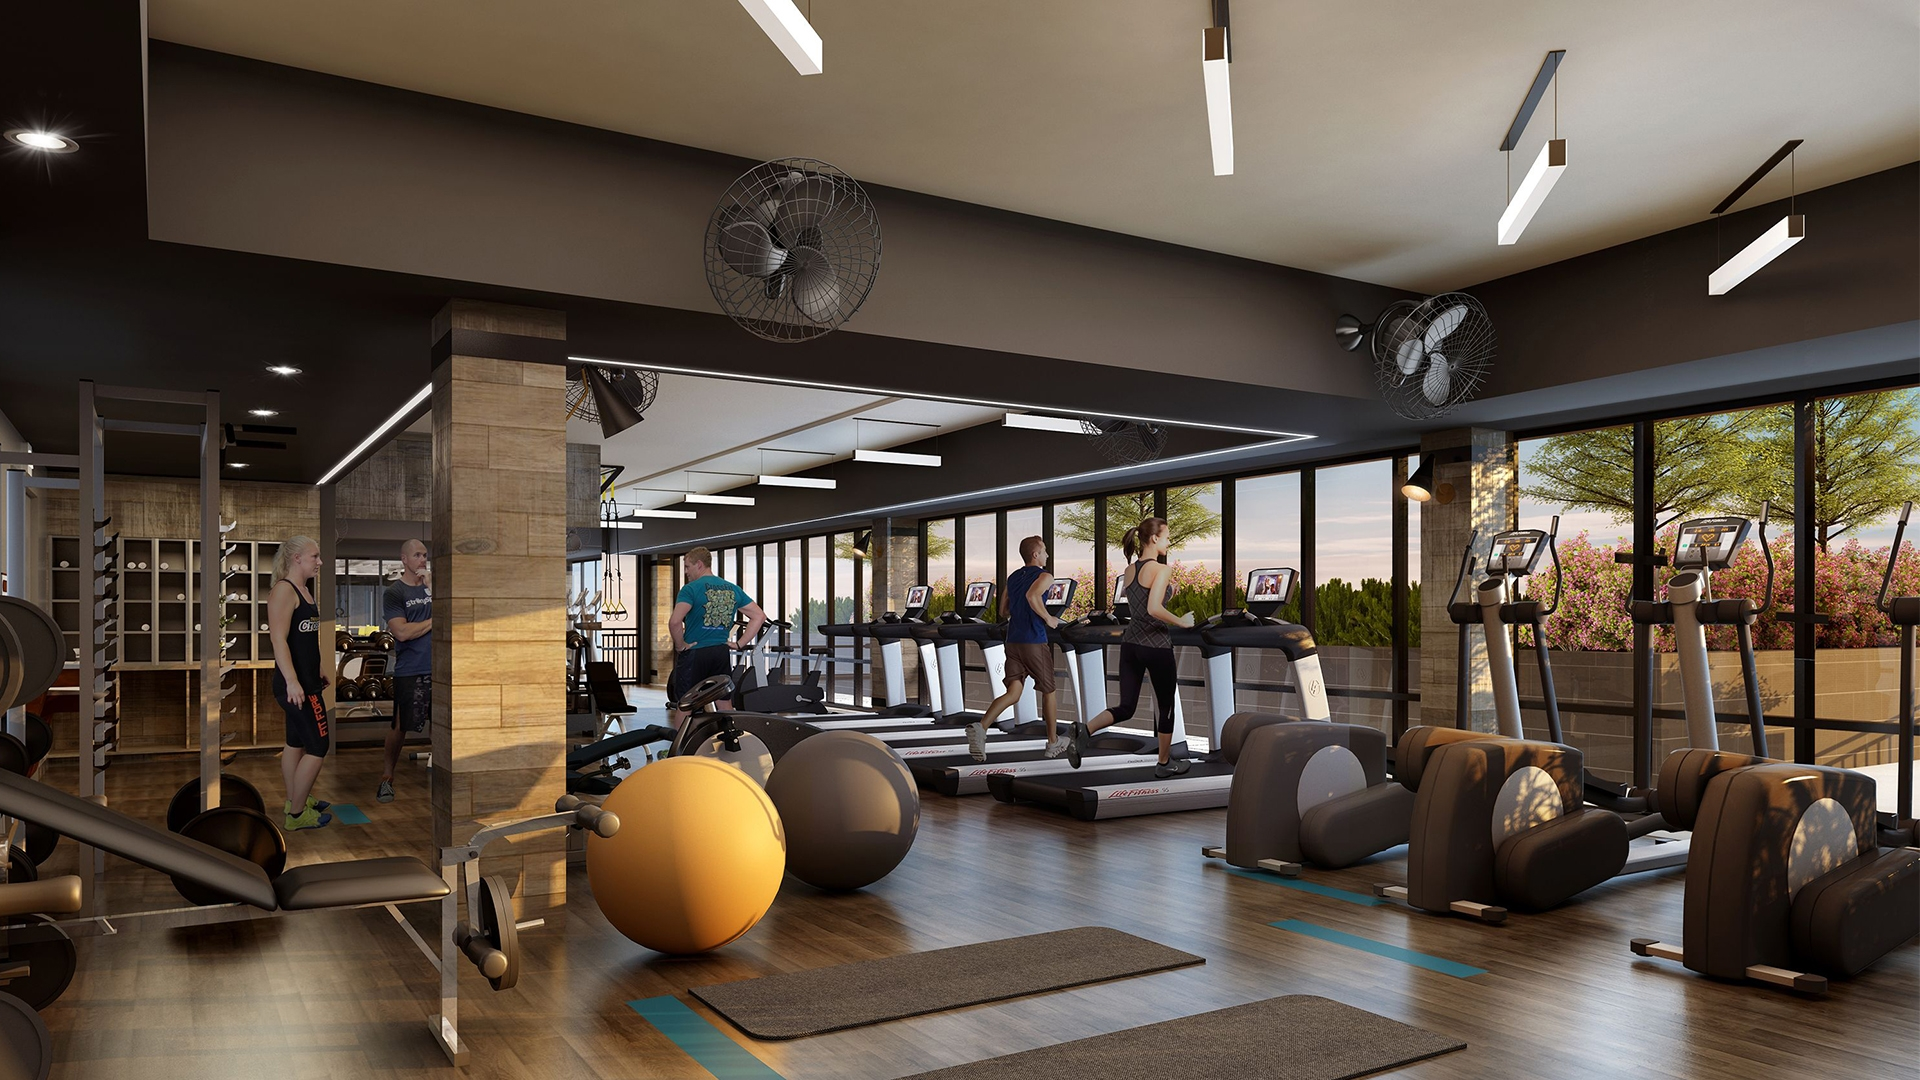 Who wants a quiet fitness room in their condo building?